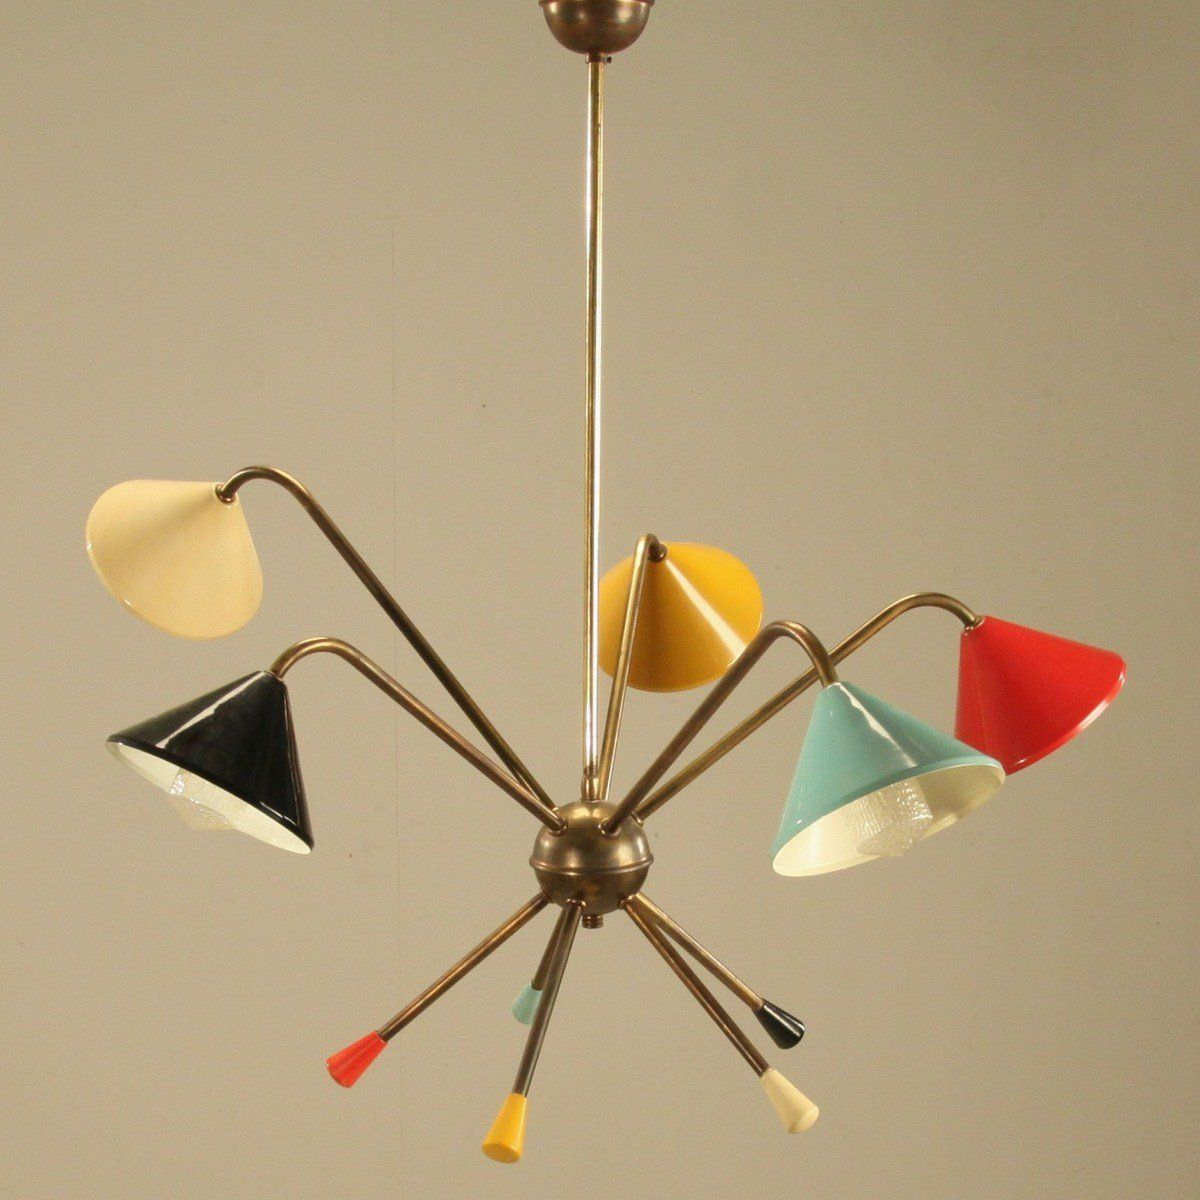 1950s italian atomic chandelier light your way to a more colorful 1950s italian atomic chandelier light your way to a more colorful tomorrowland aloadofball